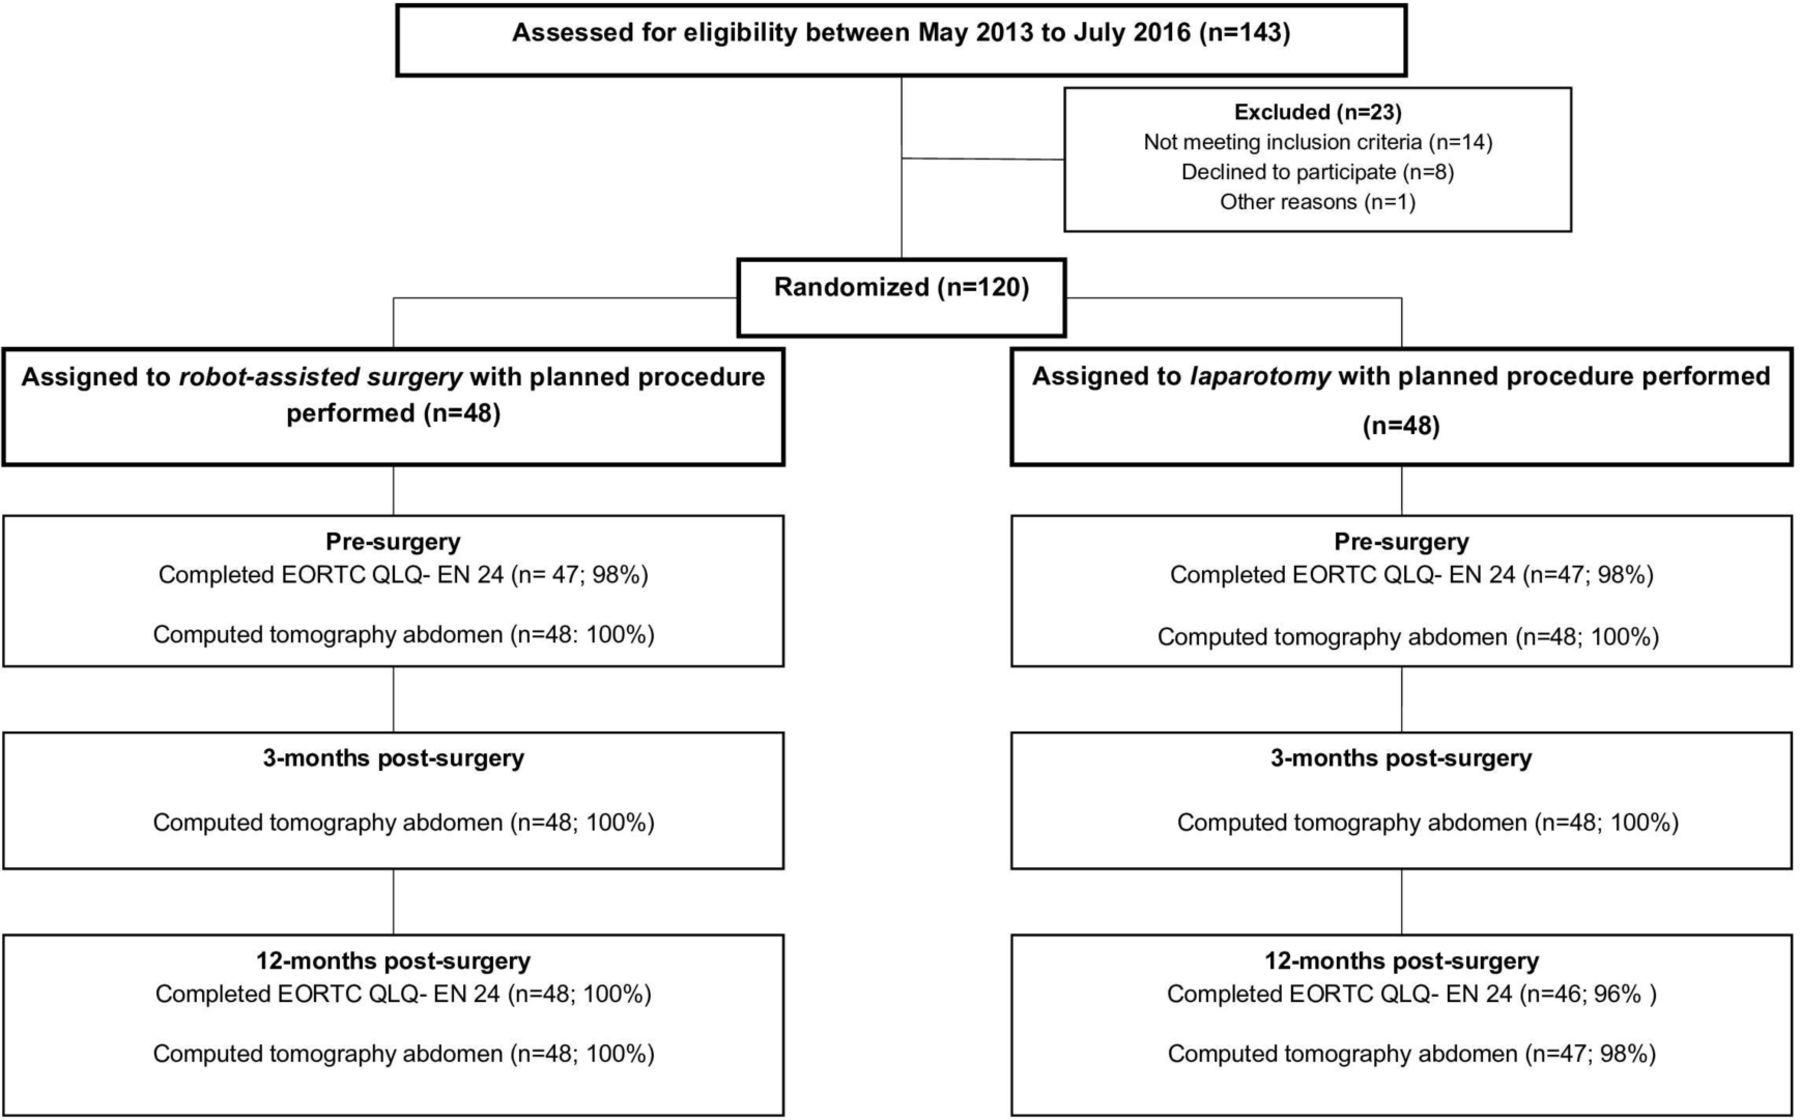 Lymphedema, serious adverse events, and imaging 1 year after